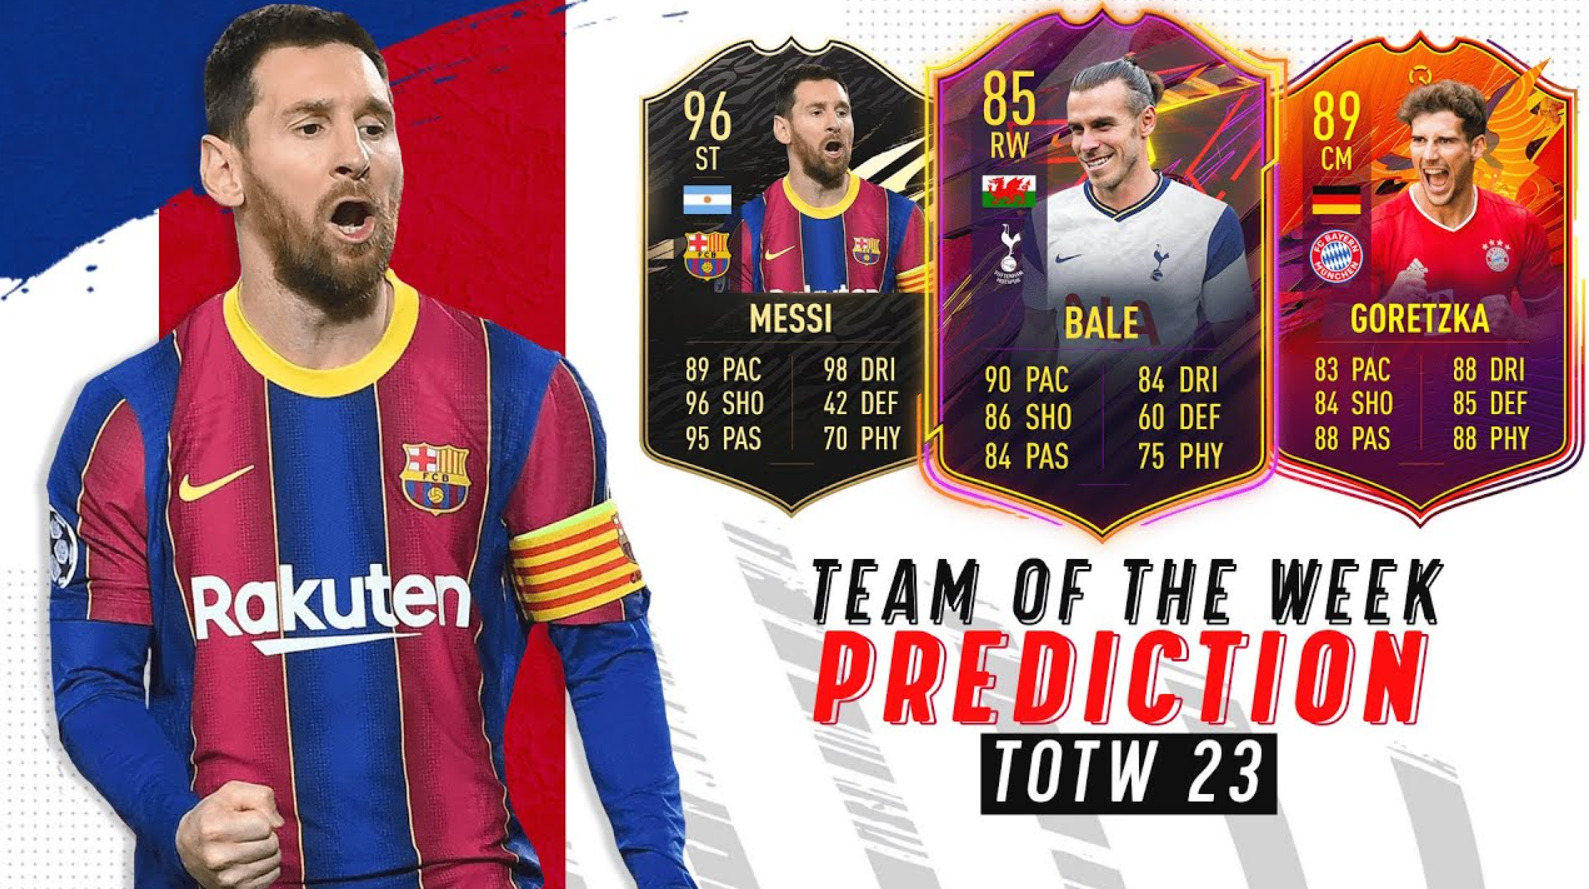 fifa 21 totw totw fifa 21 march totw 23 predictions fifa 21 fifa 21 totw 23 totw 23 predictions fifa 21 buy fifa 21 fifa predictions game code fifa game key download fifa cd key buy fifa compare game key fifa steam key fifa fifa 21 game key code new team fifa best team fifa 21 best players prediction